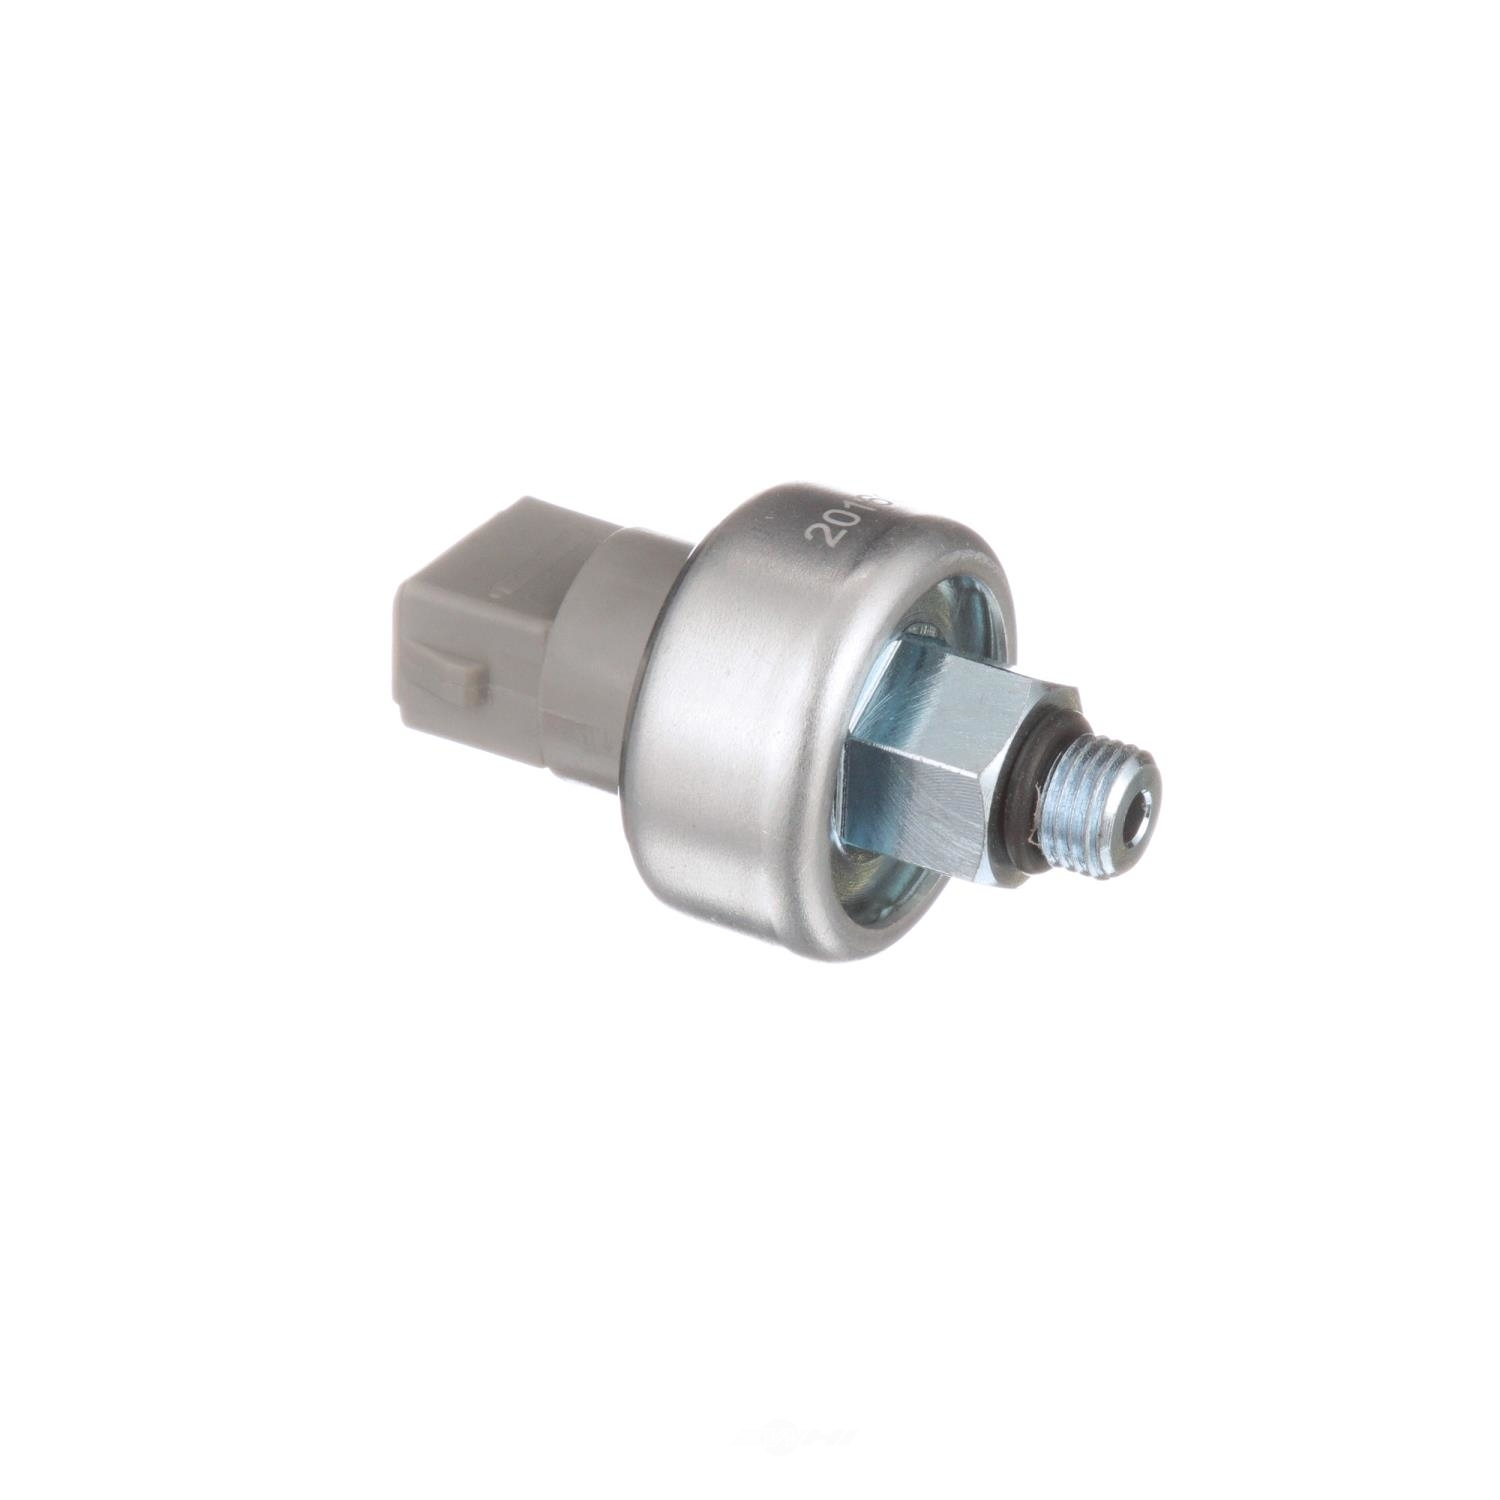 STANDARD T-SERIES - Power Steering Pressure Switch - STT PSS4T